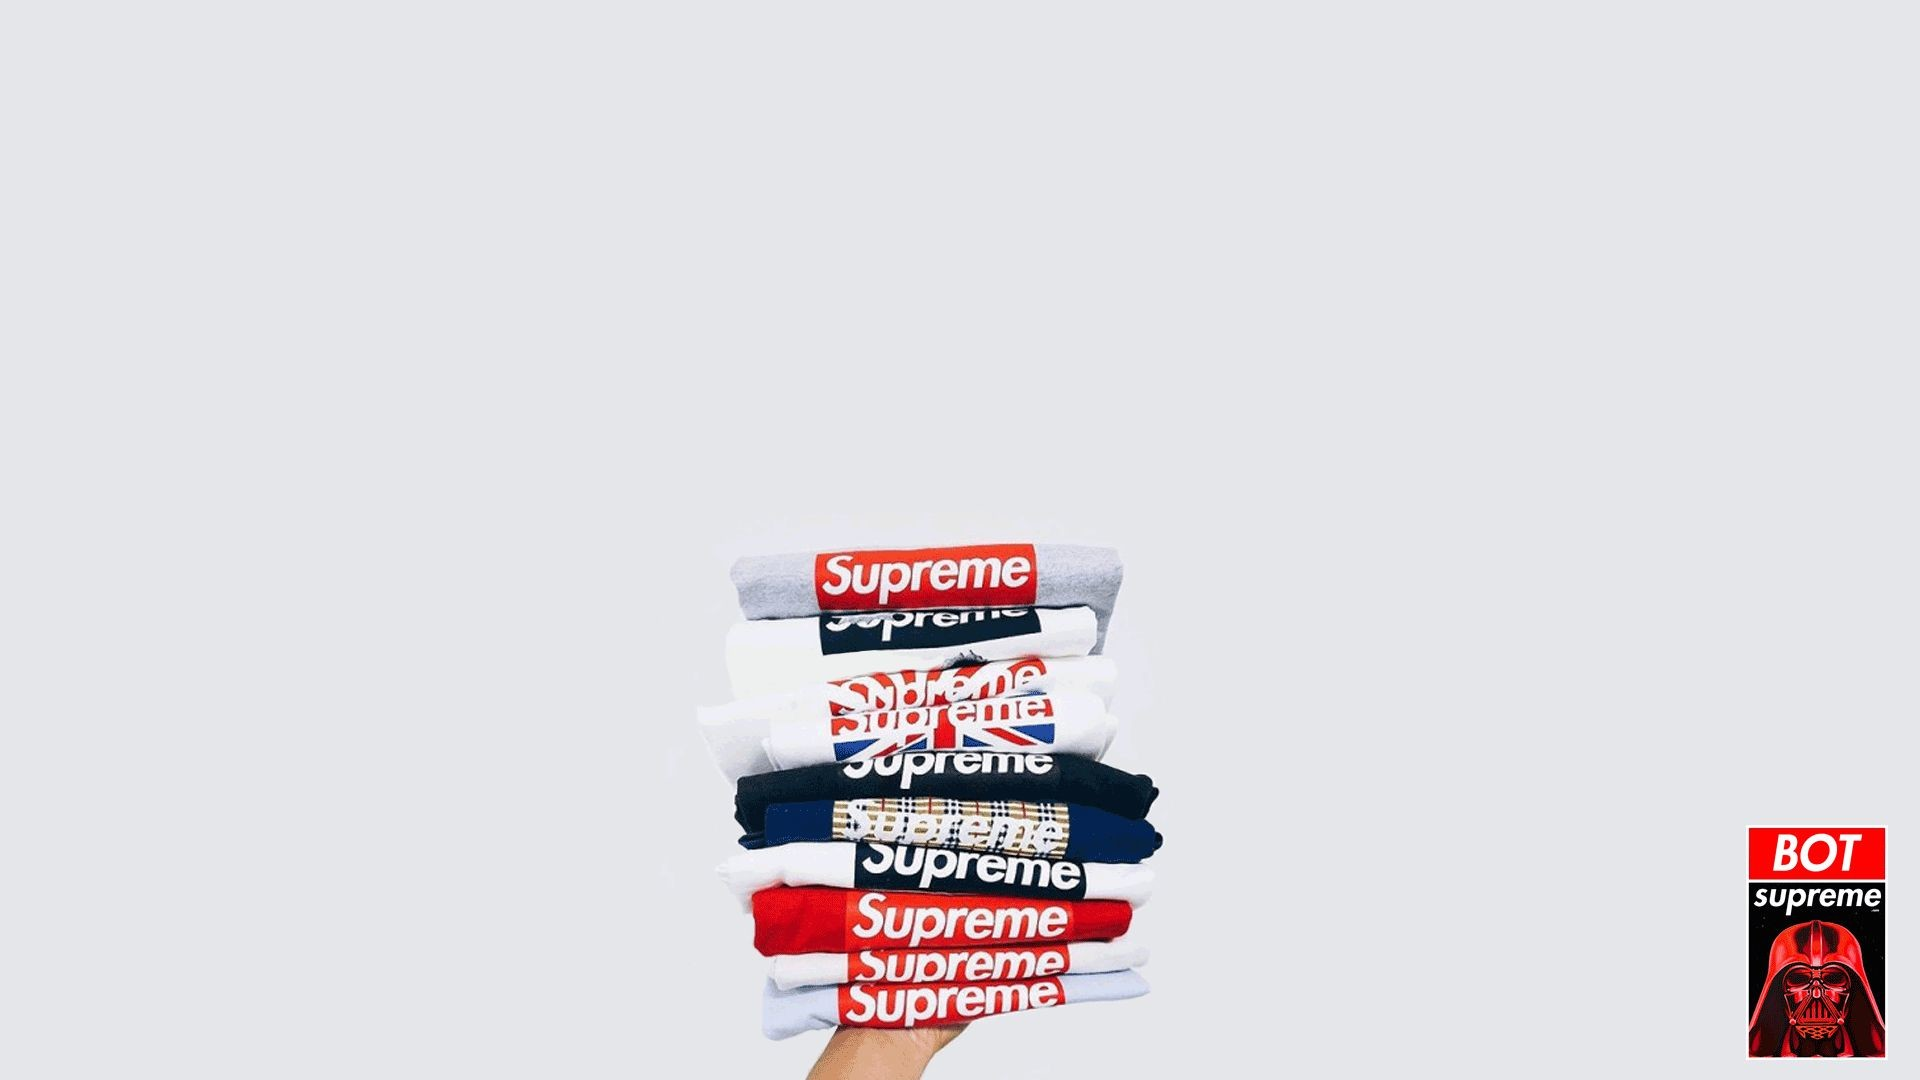 Res: 1920x1080, Supreme Wallpapers Hd Is Cool Wallpapers